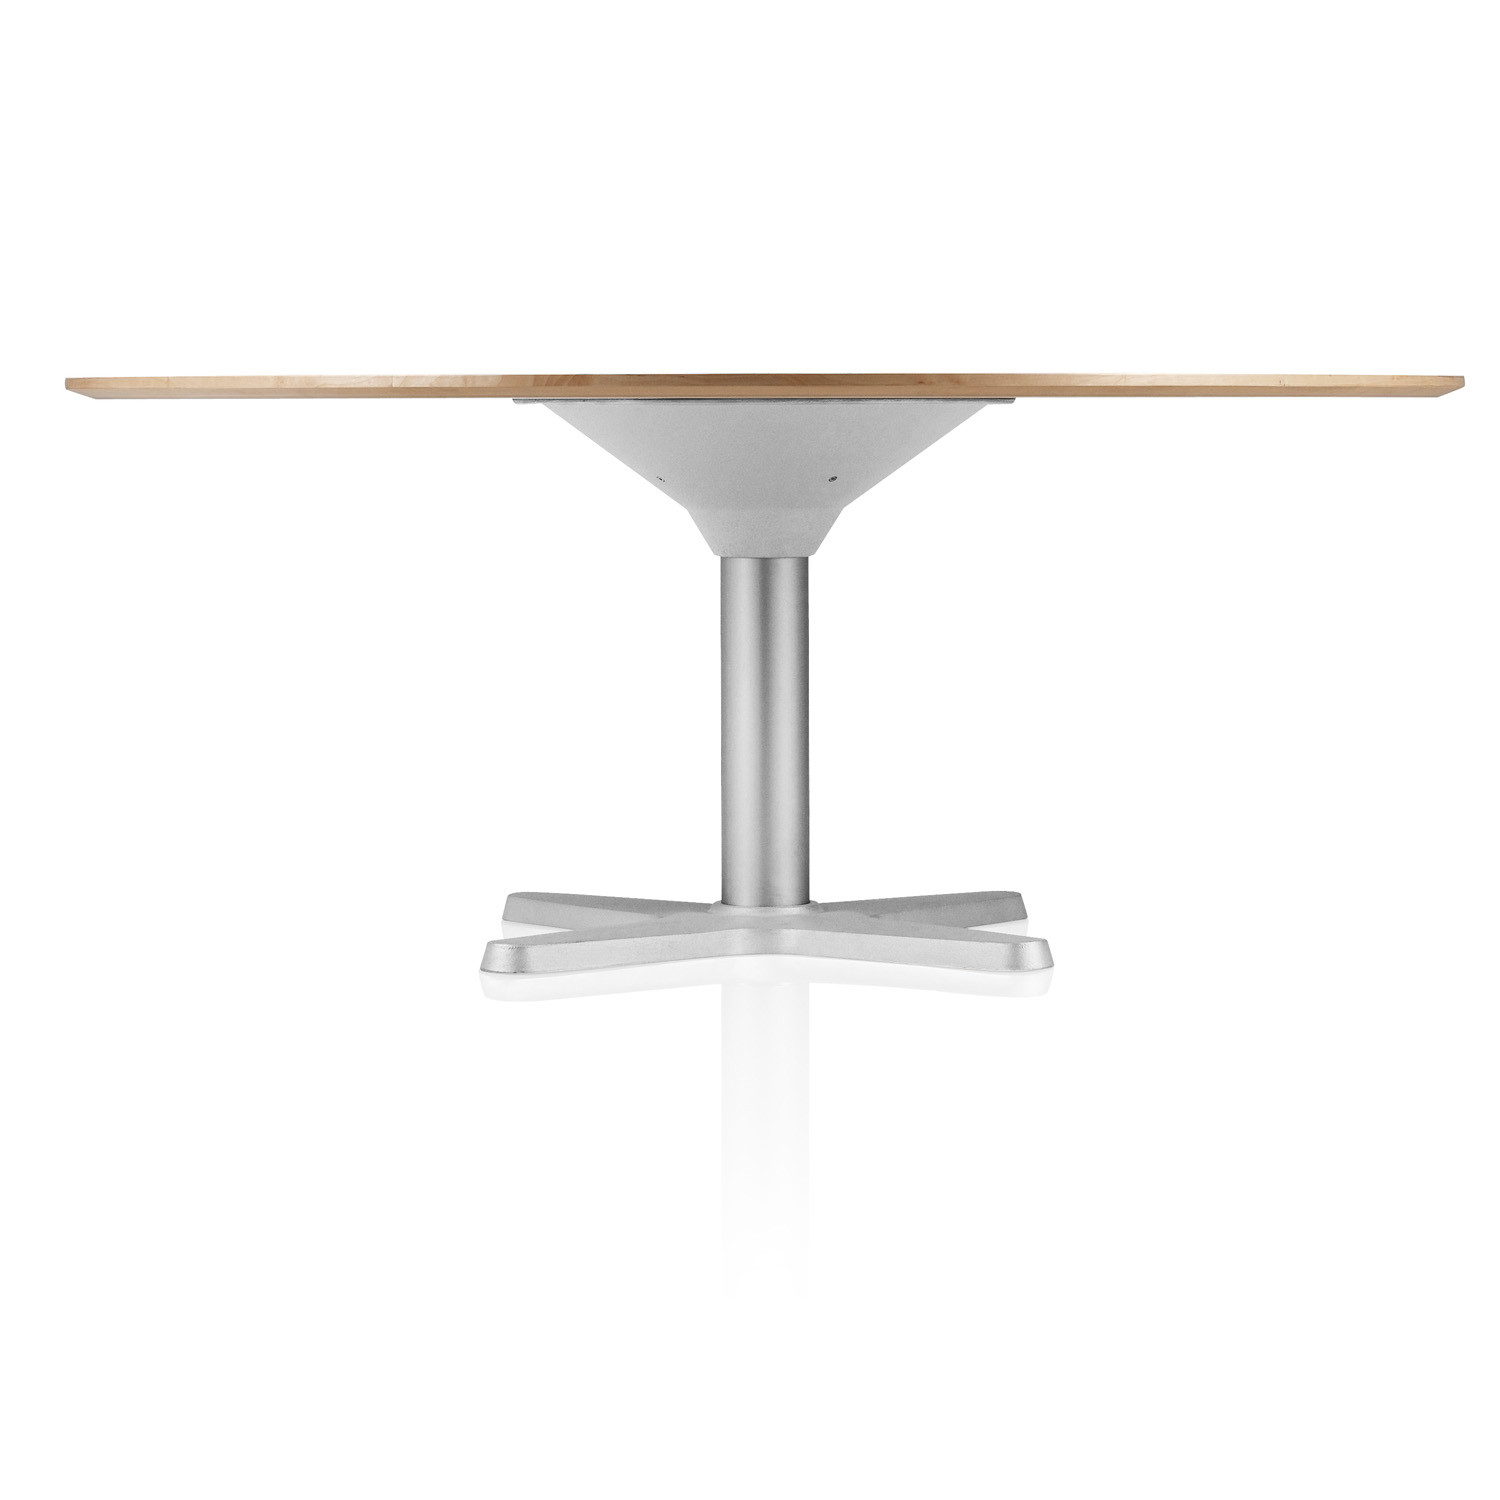 Lammhults Atlas round conference table